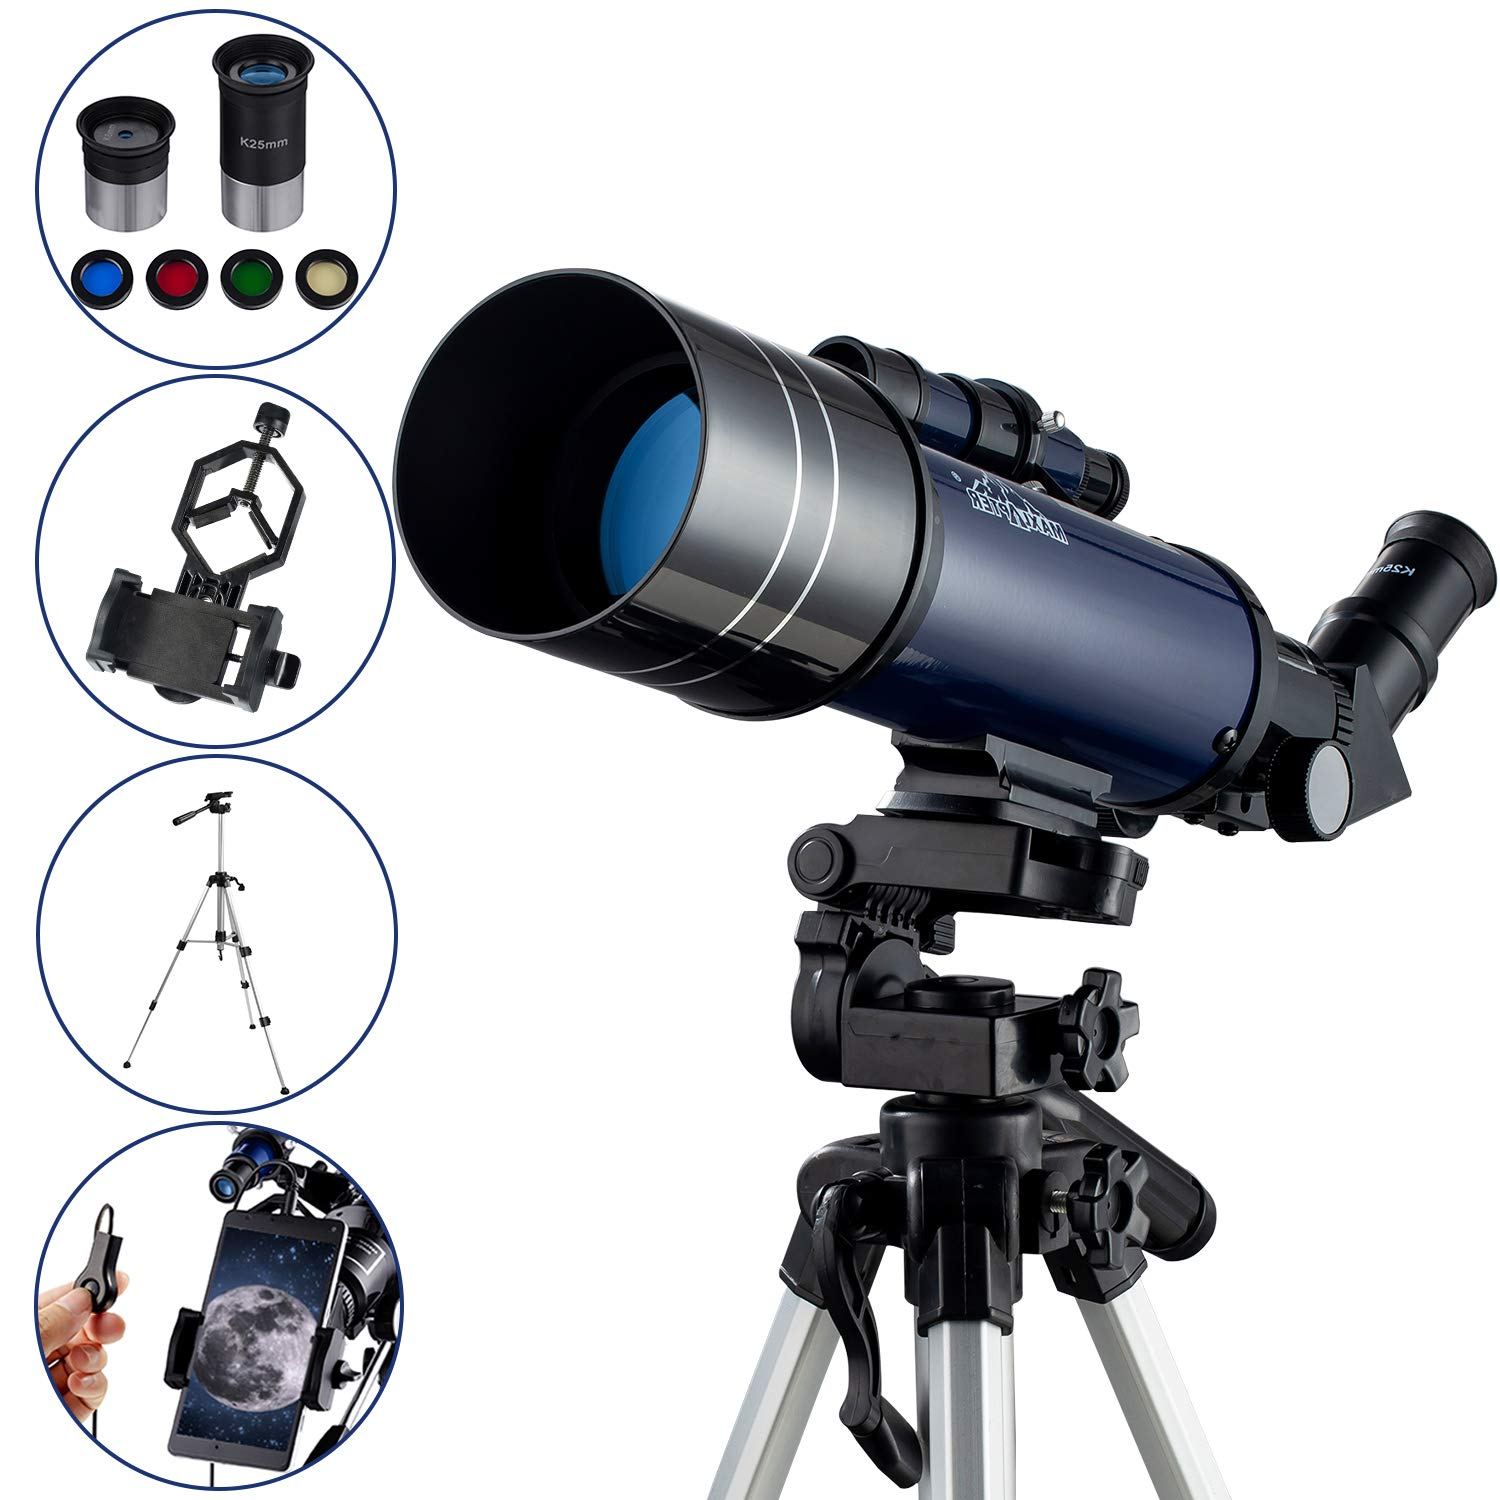 Refractor Astronomy Telescope for Kids Starter Teens, Dual-Use with Standard Tripod Smartphone Adapter Case Wired Shutter Accessories, 400/70mm Basic Travel Scope MAXLAPTER